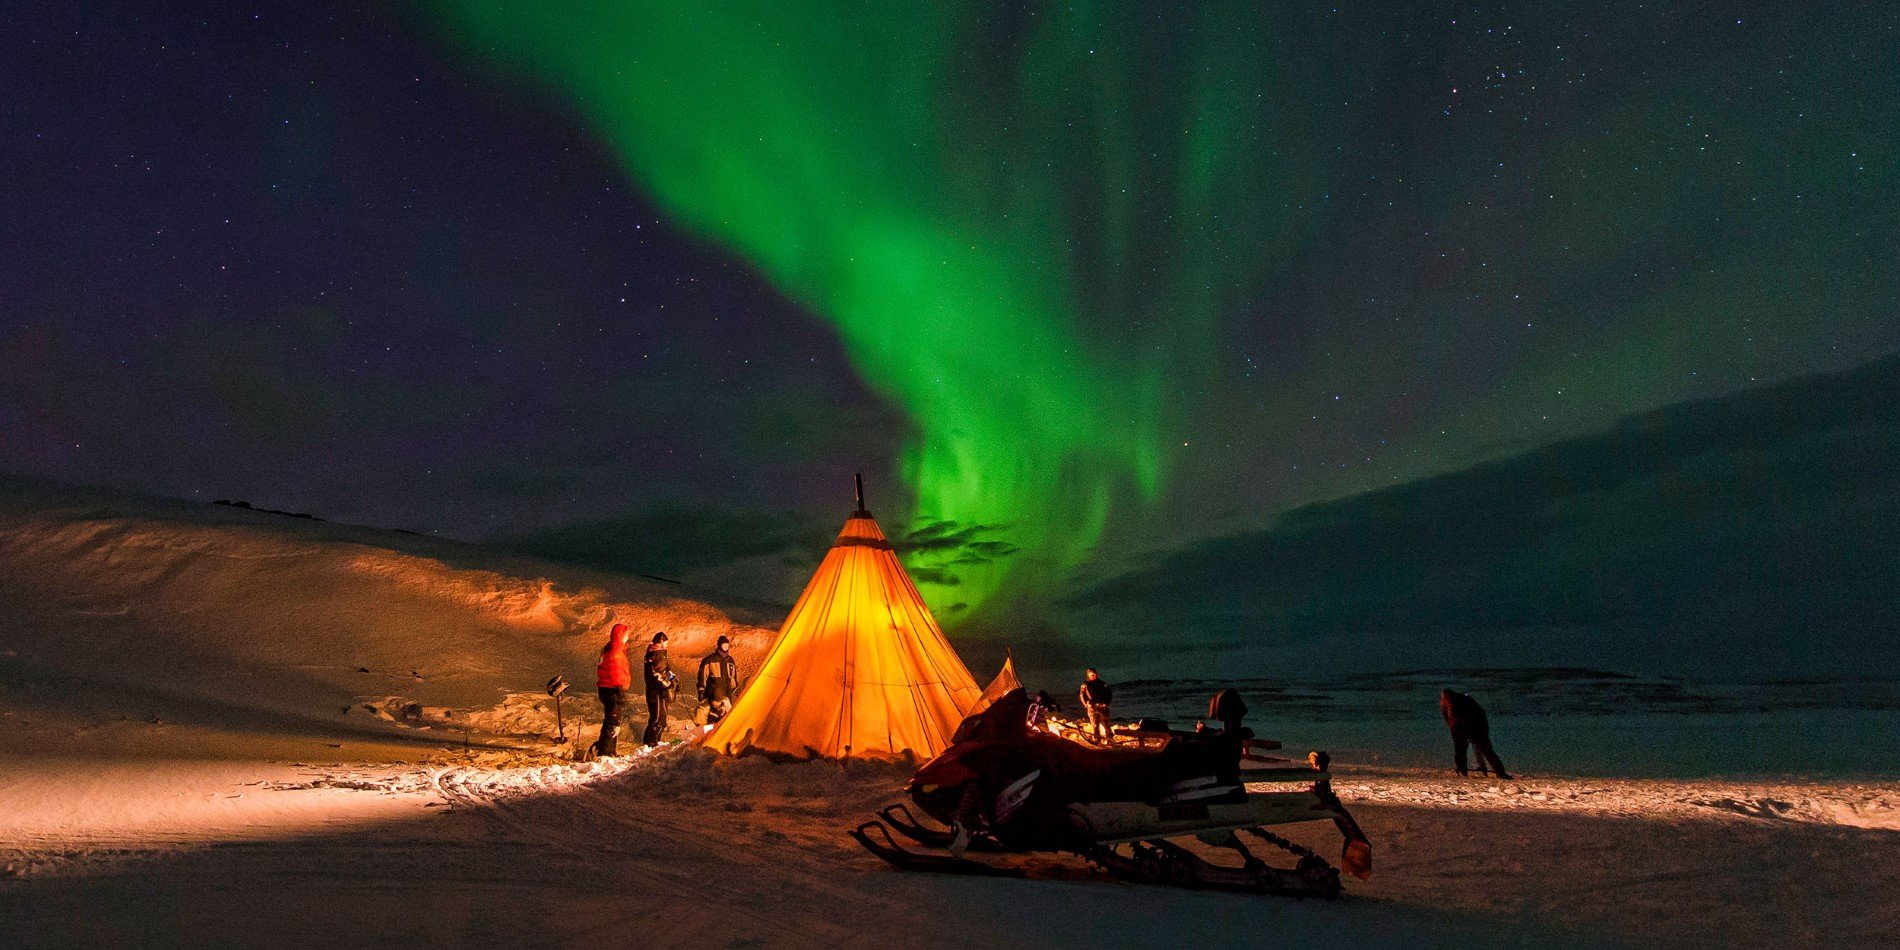 There are great chances of seeing the Northern Lights north of the Polar Circle